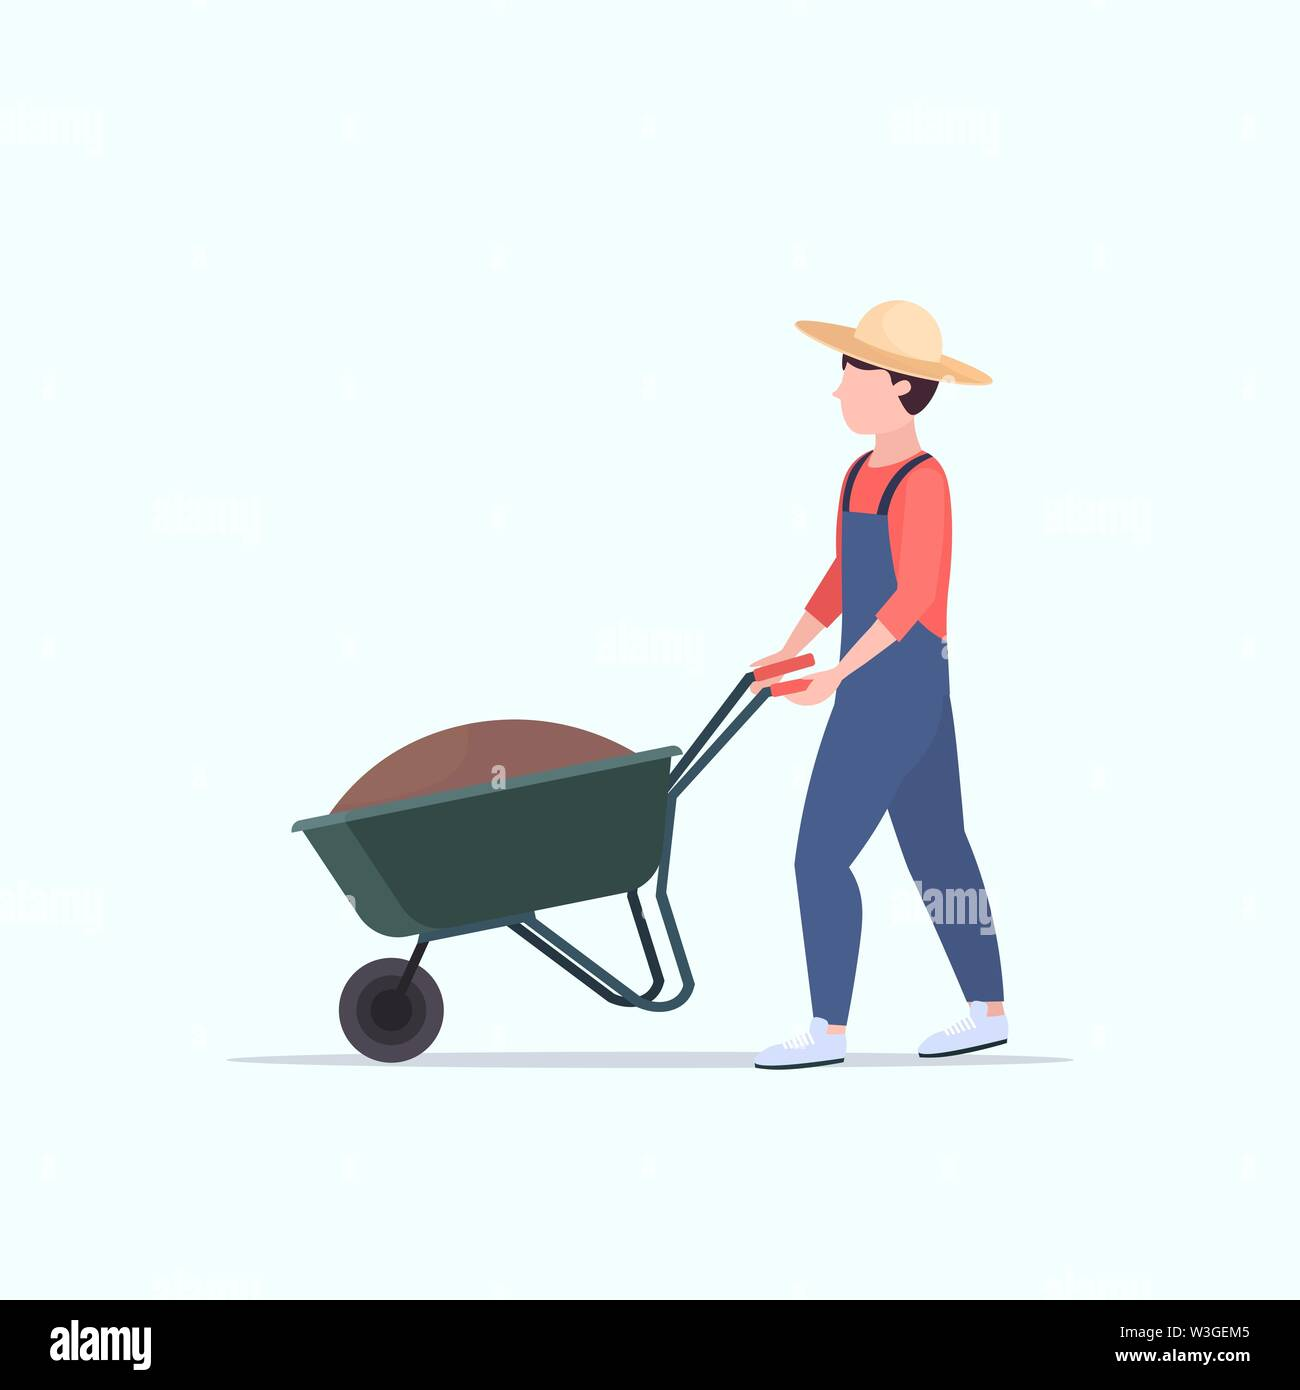 gardener man pushing wheelbarrow loaded with soil male farmer working in garden agriculture gardening concept full length - Stock Image